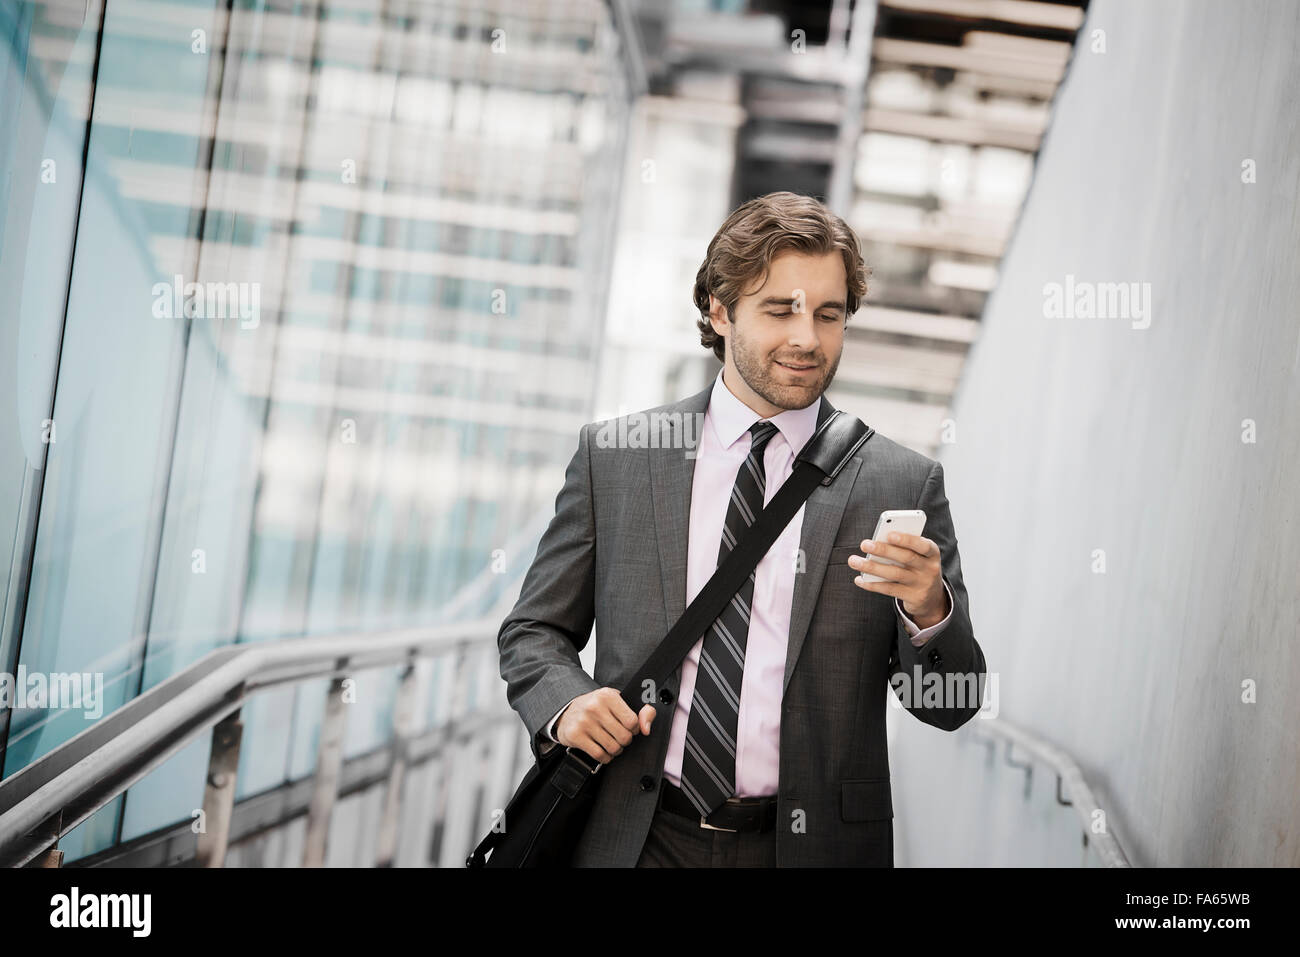 A man carrying a computer bag with a strap on a city walkway looking at his smart phone. - Stock Image